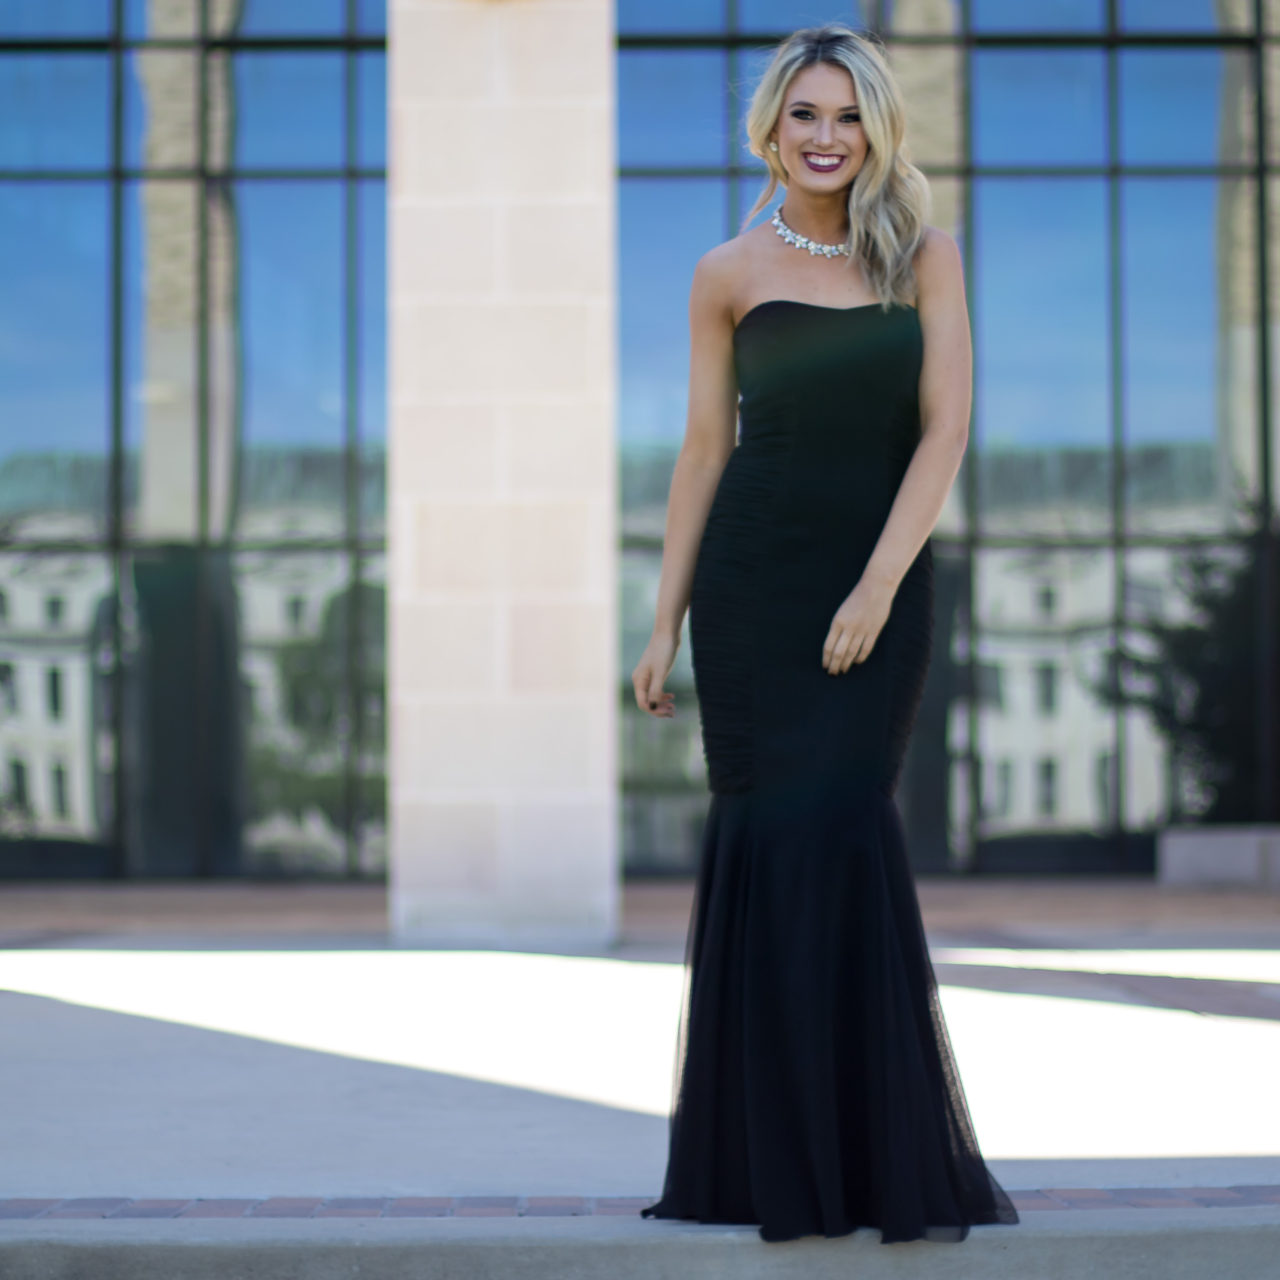 How to Wear Black to a Wedding